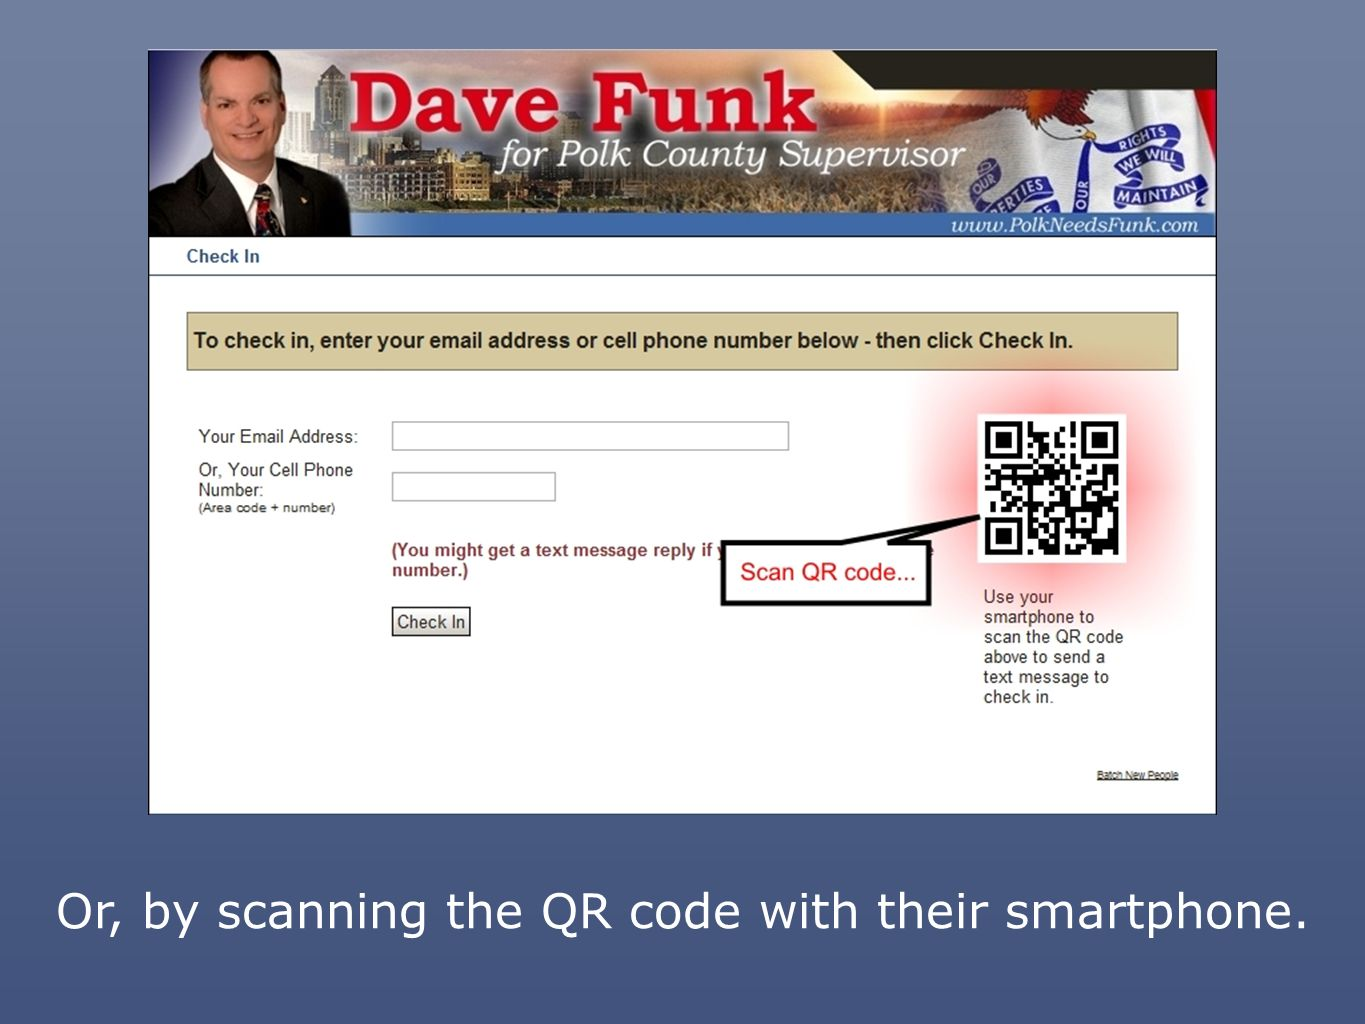 Or, by scanning the QR code with their smartphone.